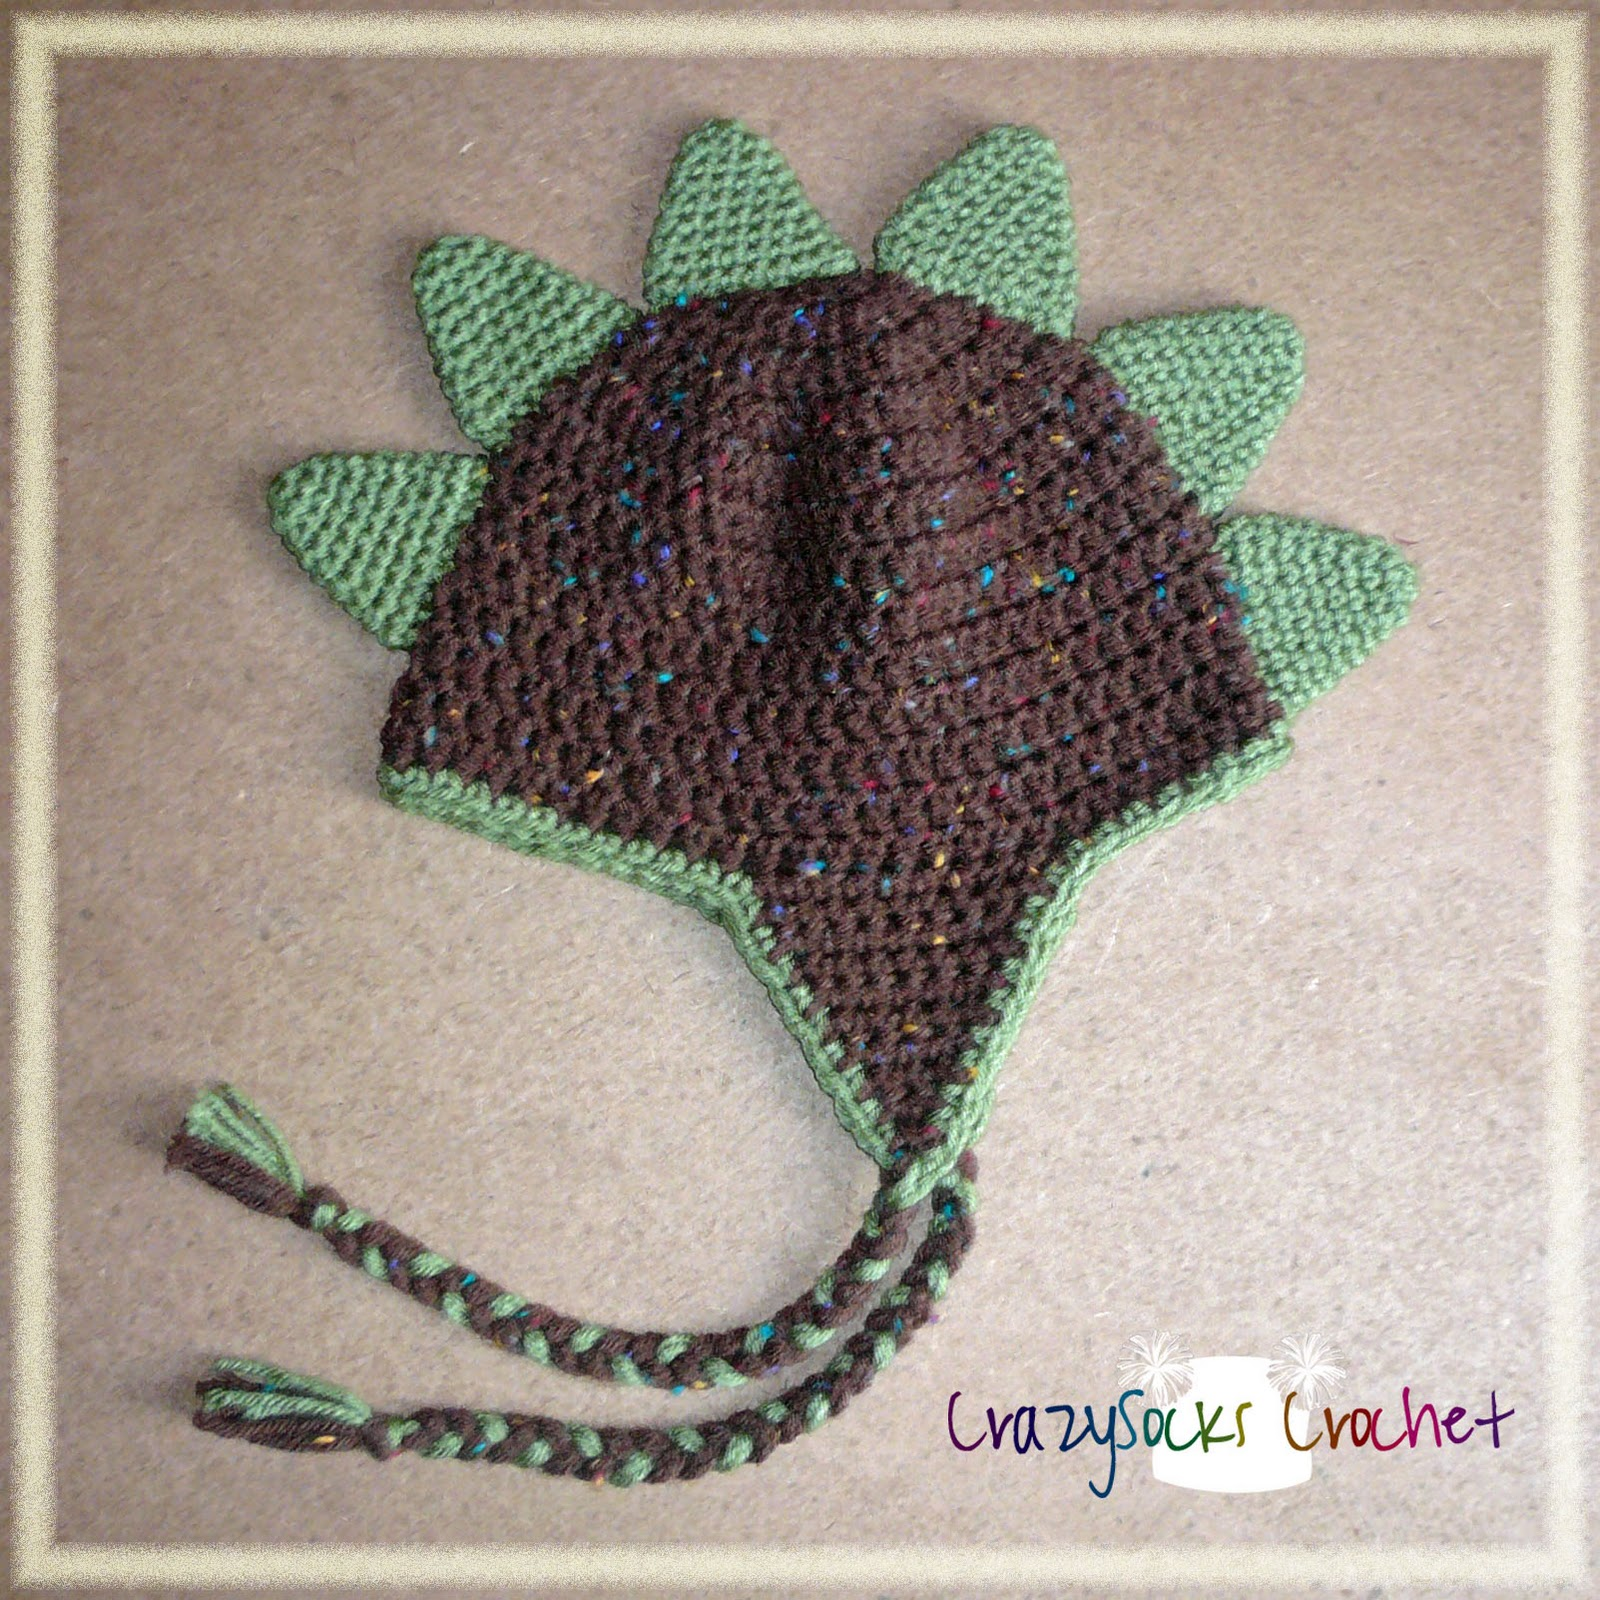 Crochet Pattern For Baby Dinosaur Hat : Danyel Pink Designs: CROCHET PATTERN - Dinosaur Spikes